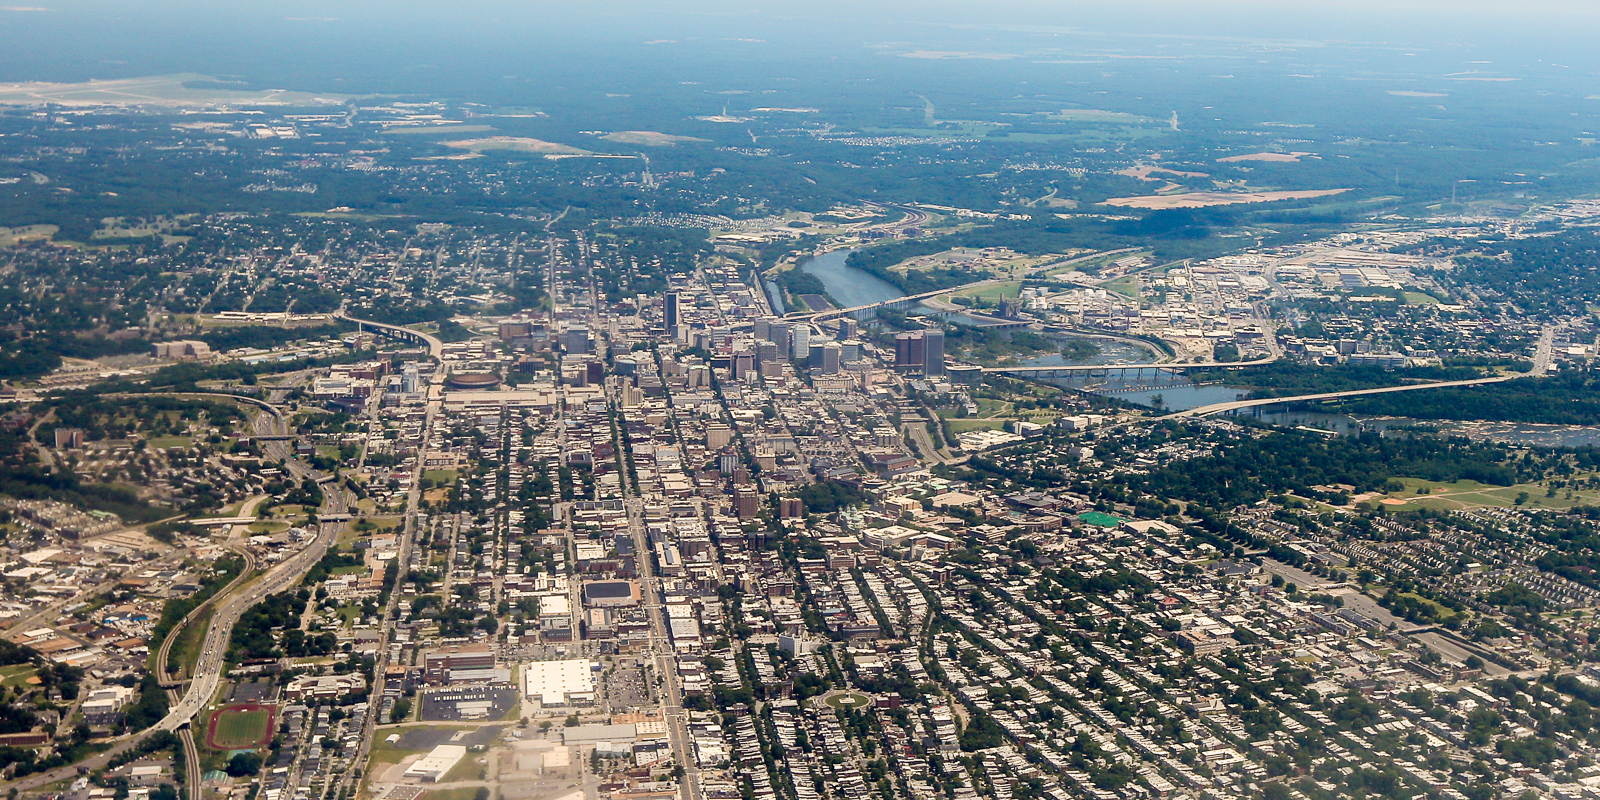 160620-rva-aerial-view-0007-web-ready